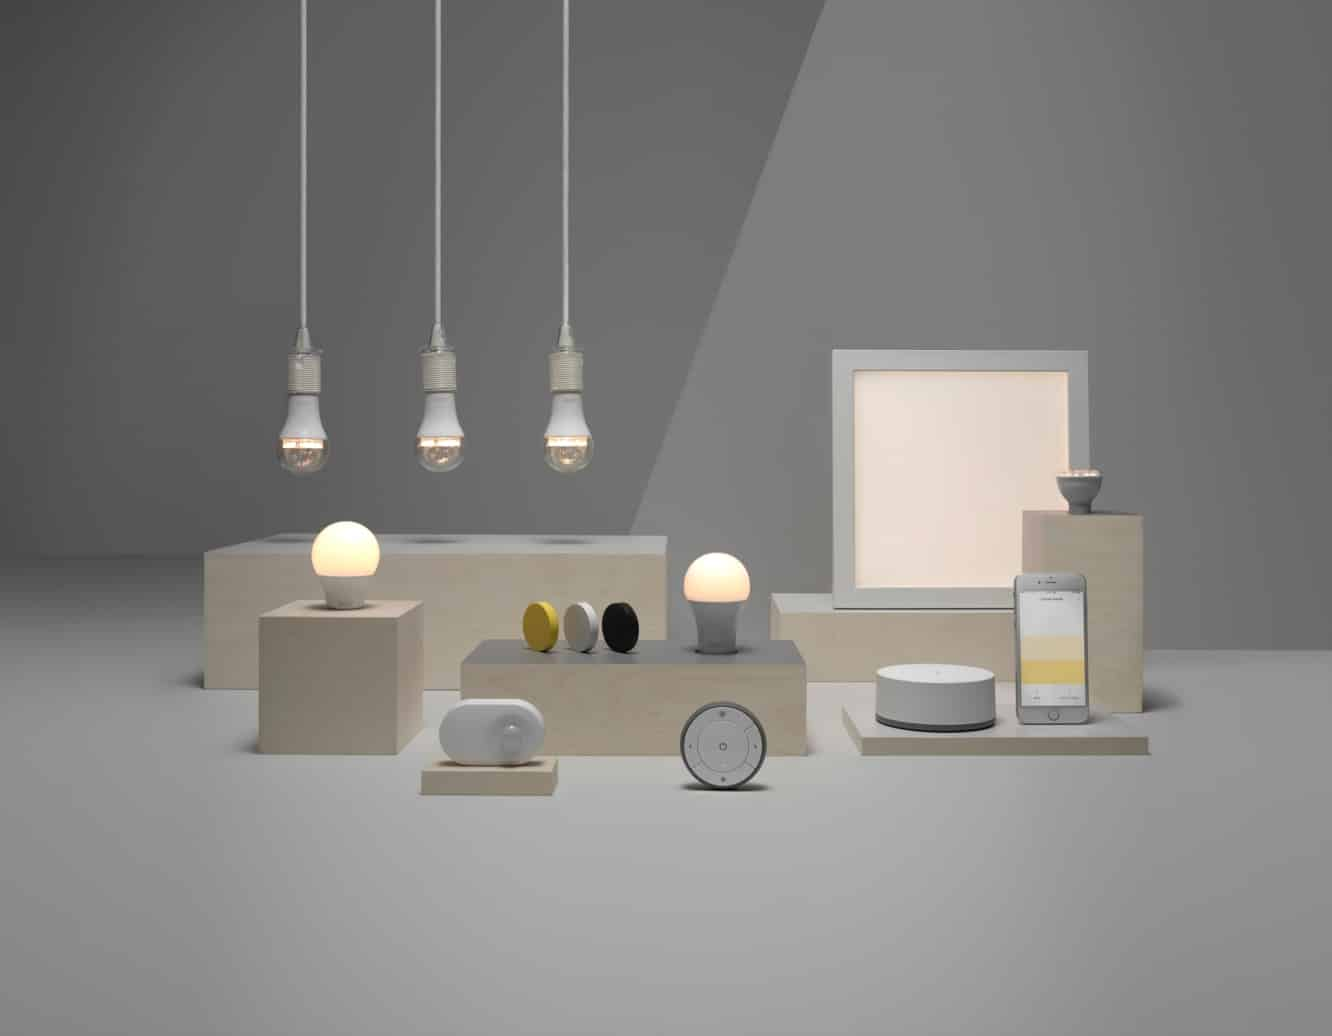 Ikea bringing HomeKit support to its smart lighting products